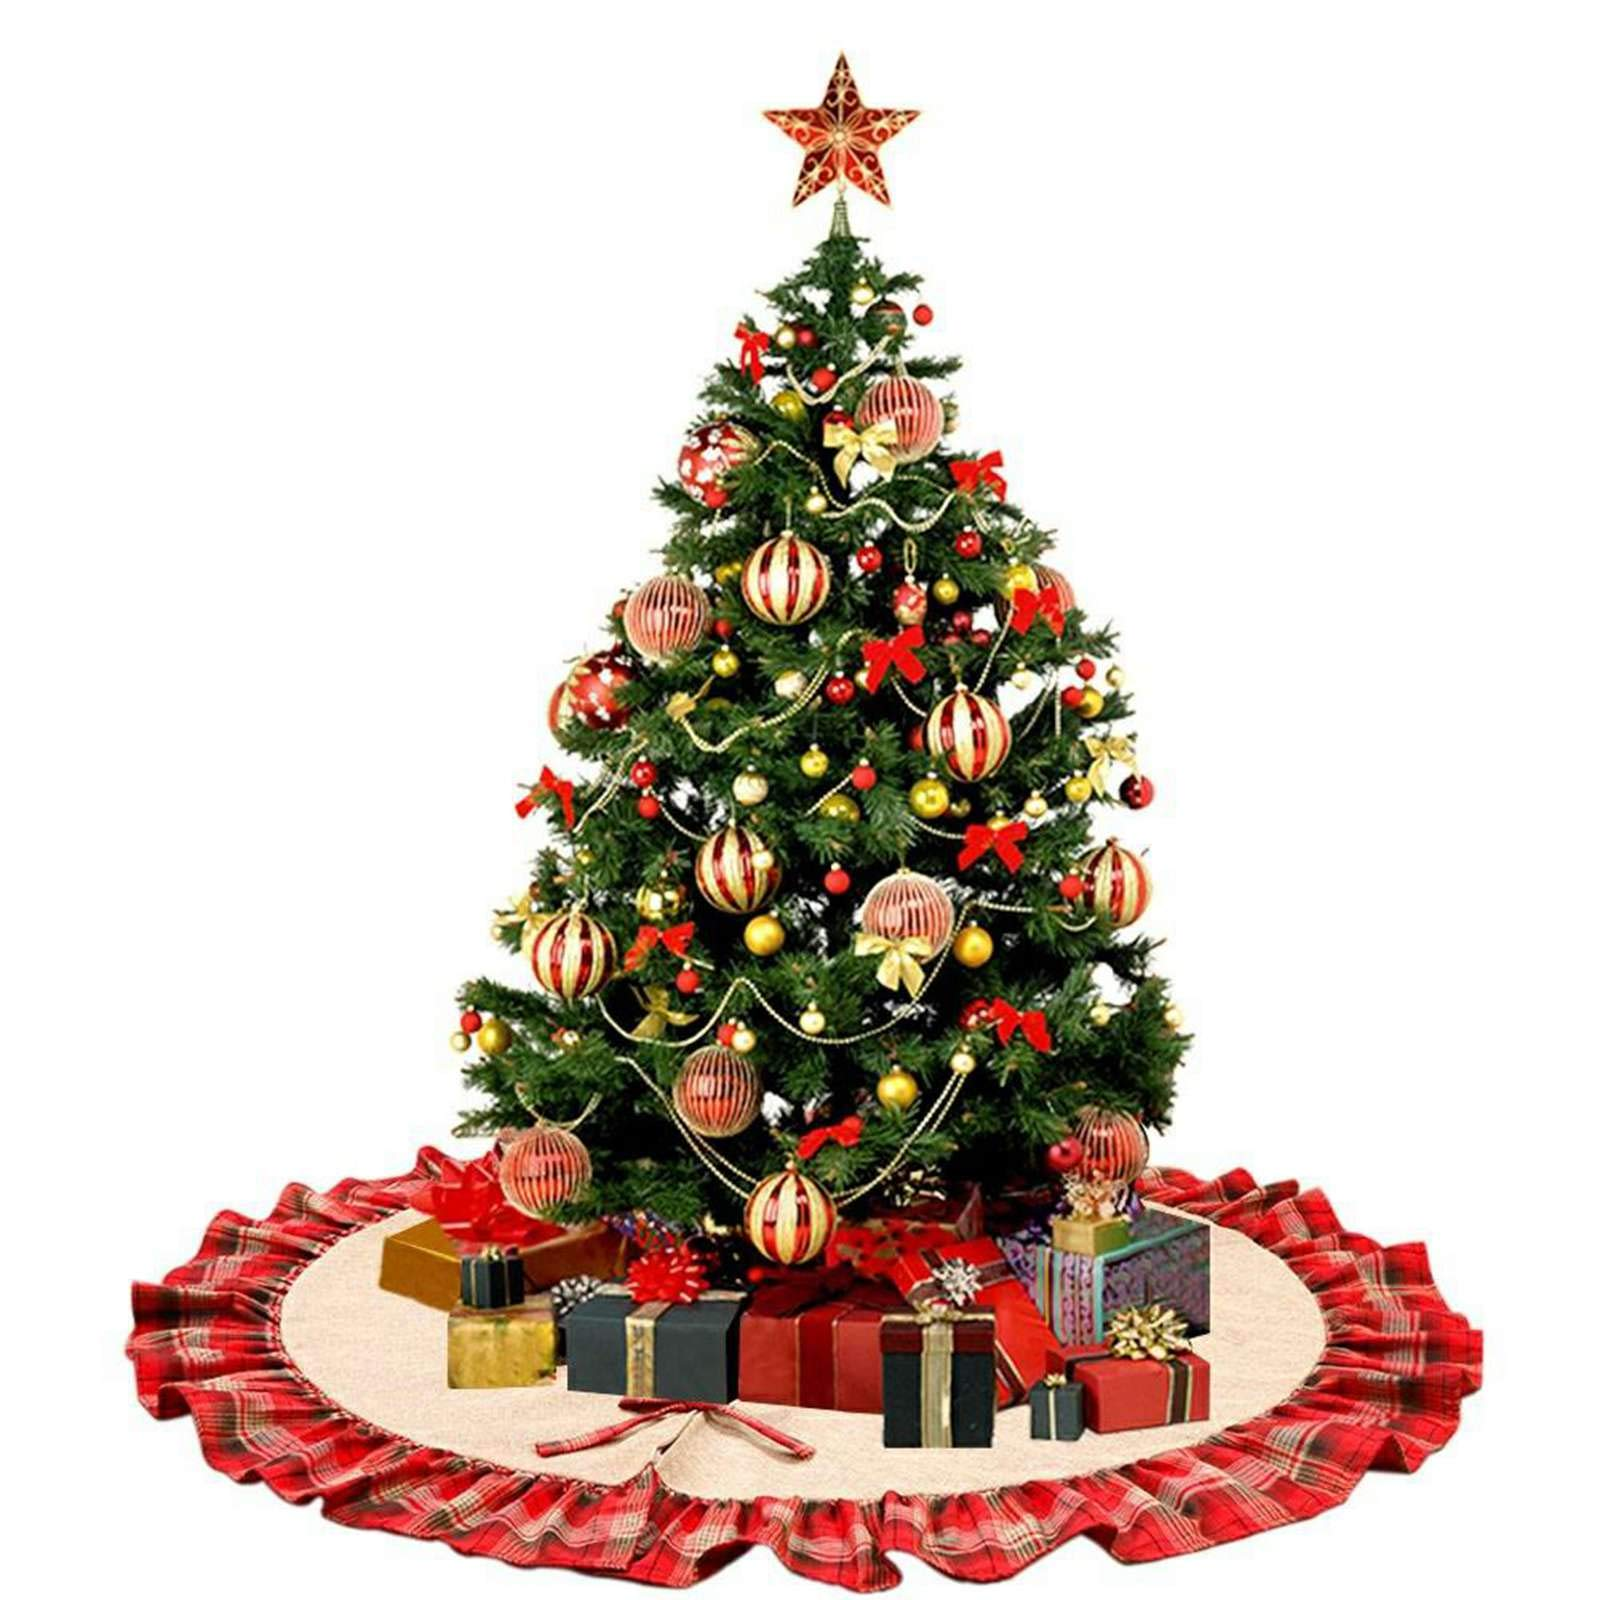 Vlovelife Christmas Tree Skirt, Linen Burlap Large 48 Inches Round Tree Skirt with Plaid Ruffle Edge for Xmas Party Holiday Home Decorations